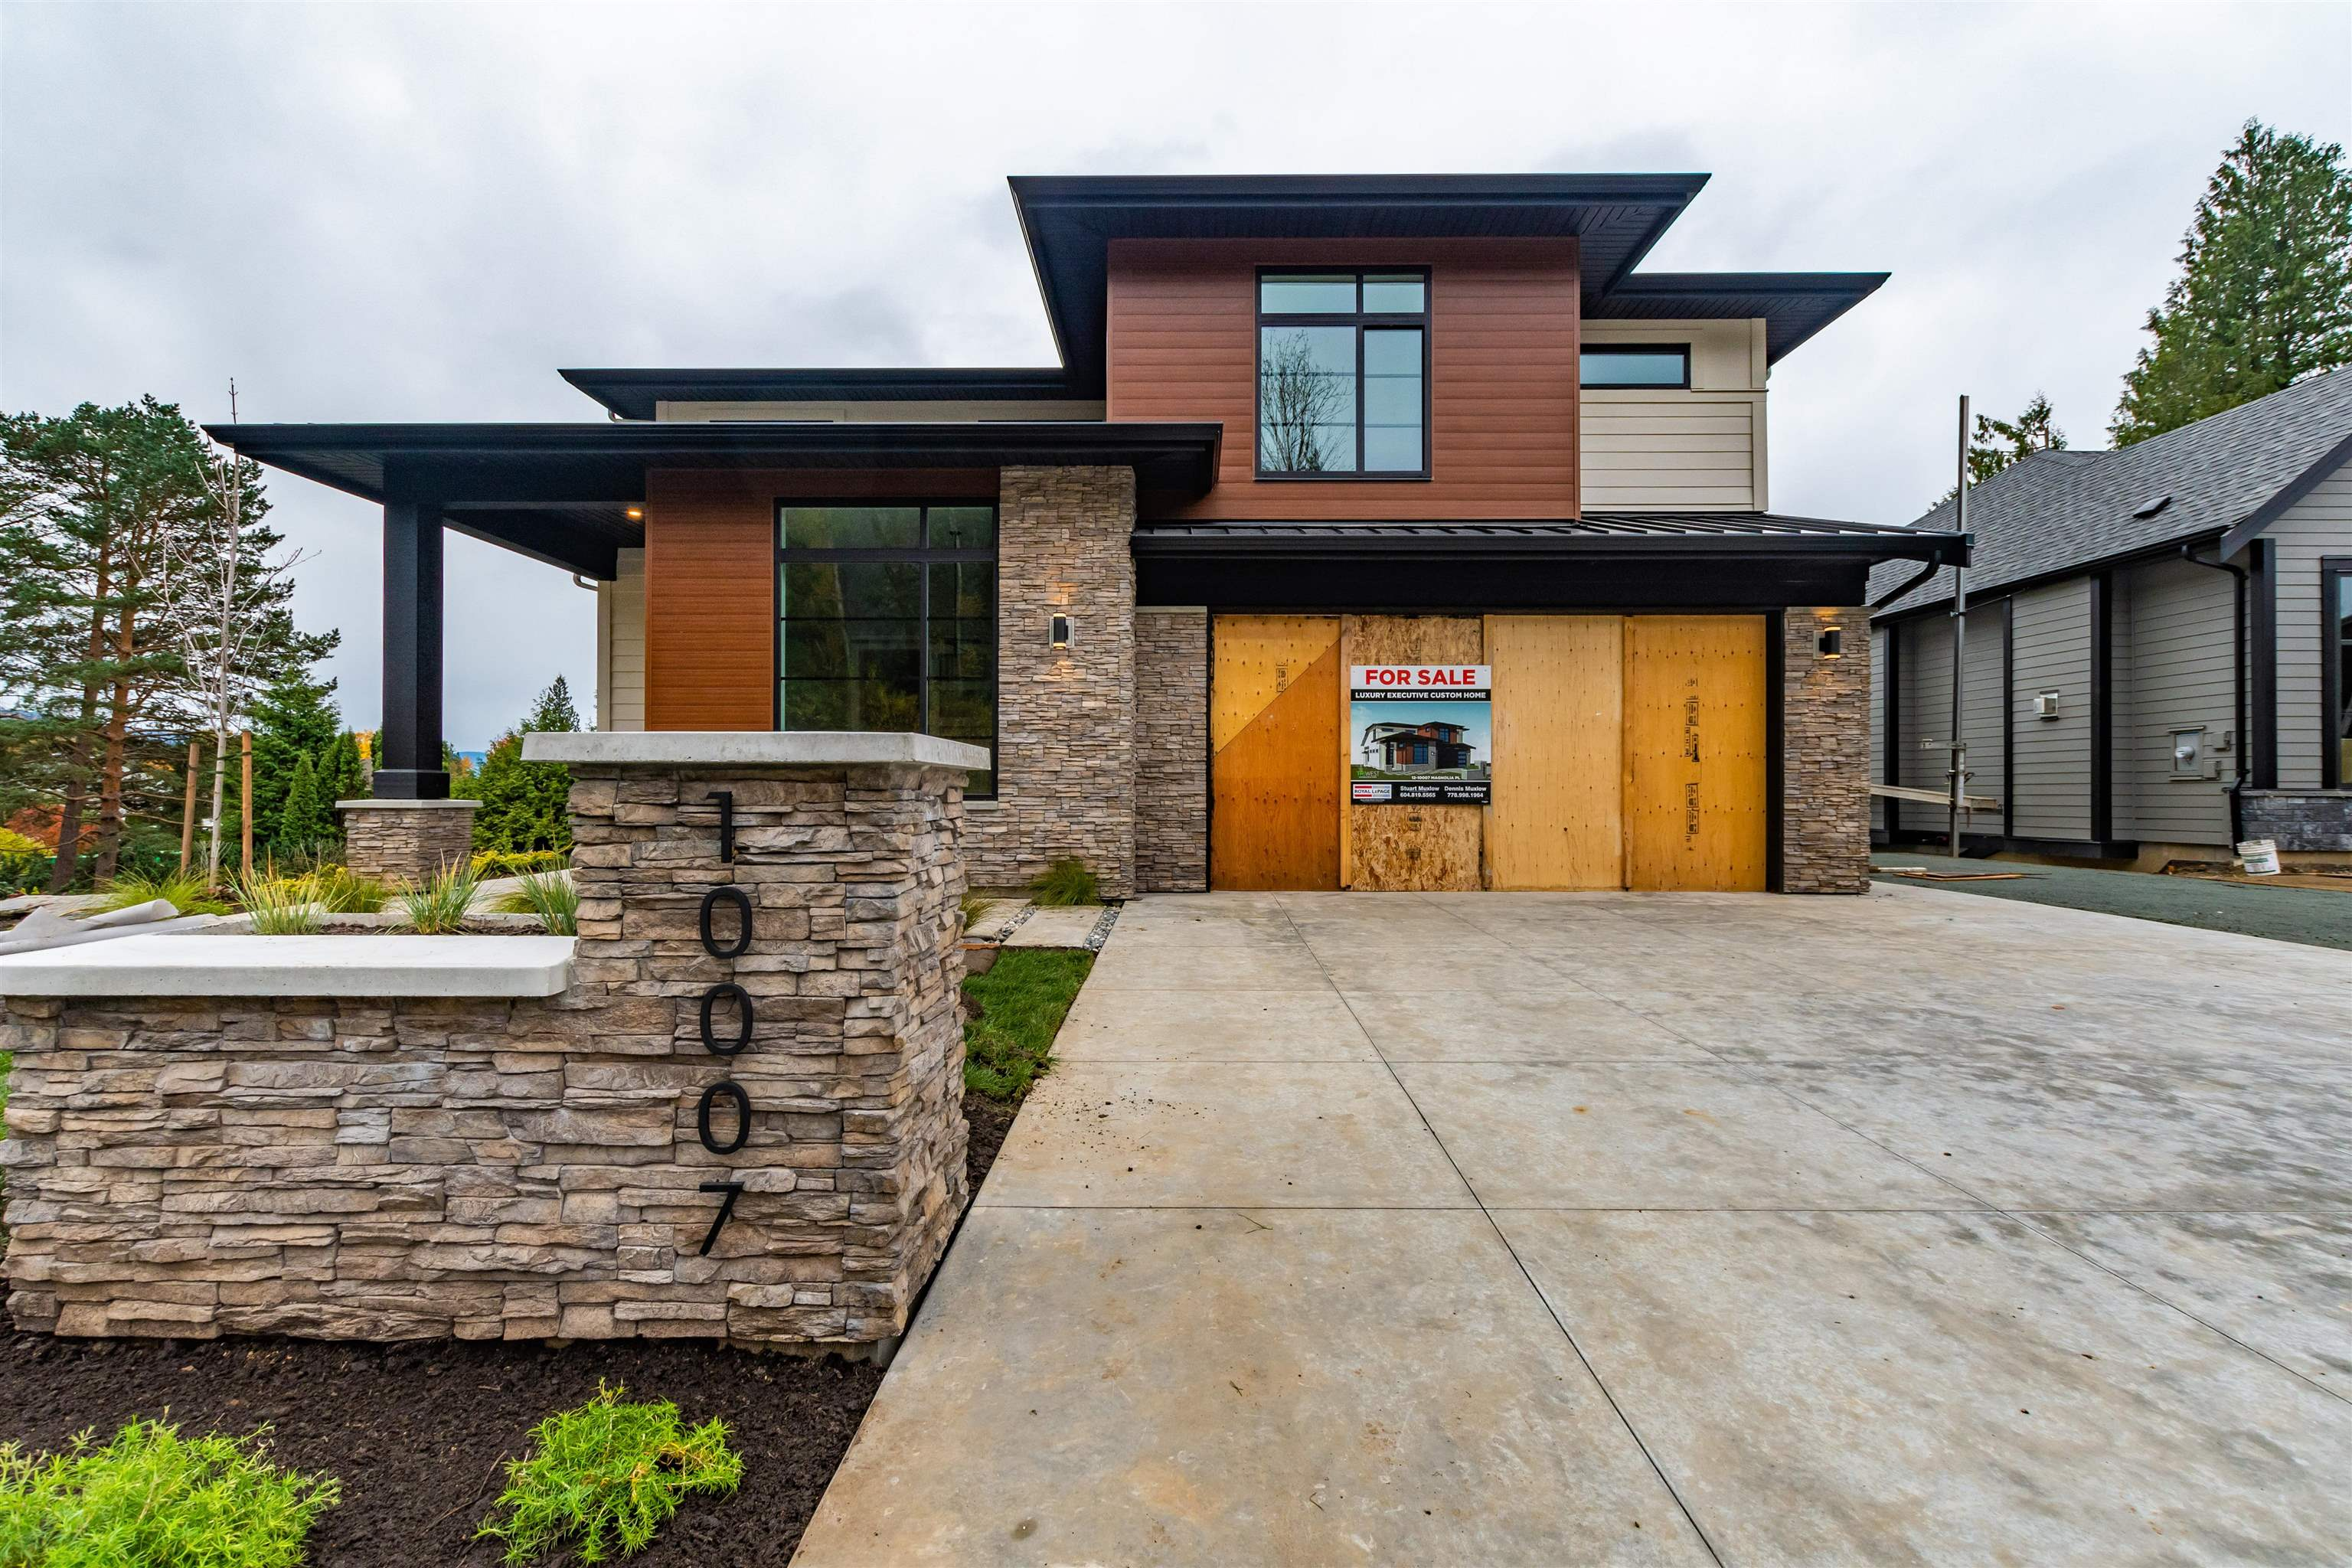 Brand new luxury home in The Gardens! Join this private Rosedale neighborhood surrounded by mountains and nature. Located just 10 min from Chilliwack with great highway access, enjoy all the privacy and serenity of rural living with the convenience of city life. This 5 bedroom, 4 bath home features almost 4,000 sqft of living area in an open concept floorplan. Main floor features stunning kitchen and dining area, expansive great room with cozy gas fireplace and access to large outdoor living area off of kitchen. Upstairs boasts a huge master retreat featuring oversized walk-in closet and ensuite bath with dual sinks, separate shower and soaker tub along with two more bedrooms. Basement includes 2 bedrooms, 2 large flex spaces and roughed in wet bar. Plenty of parking! Bring the RV!